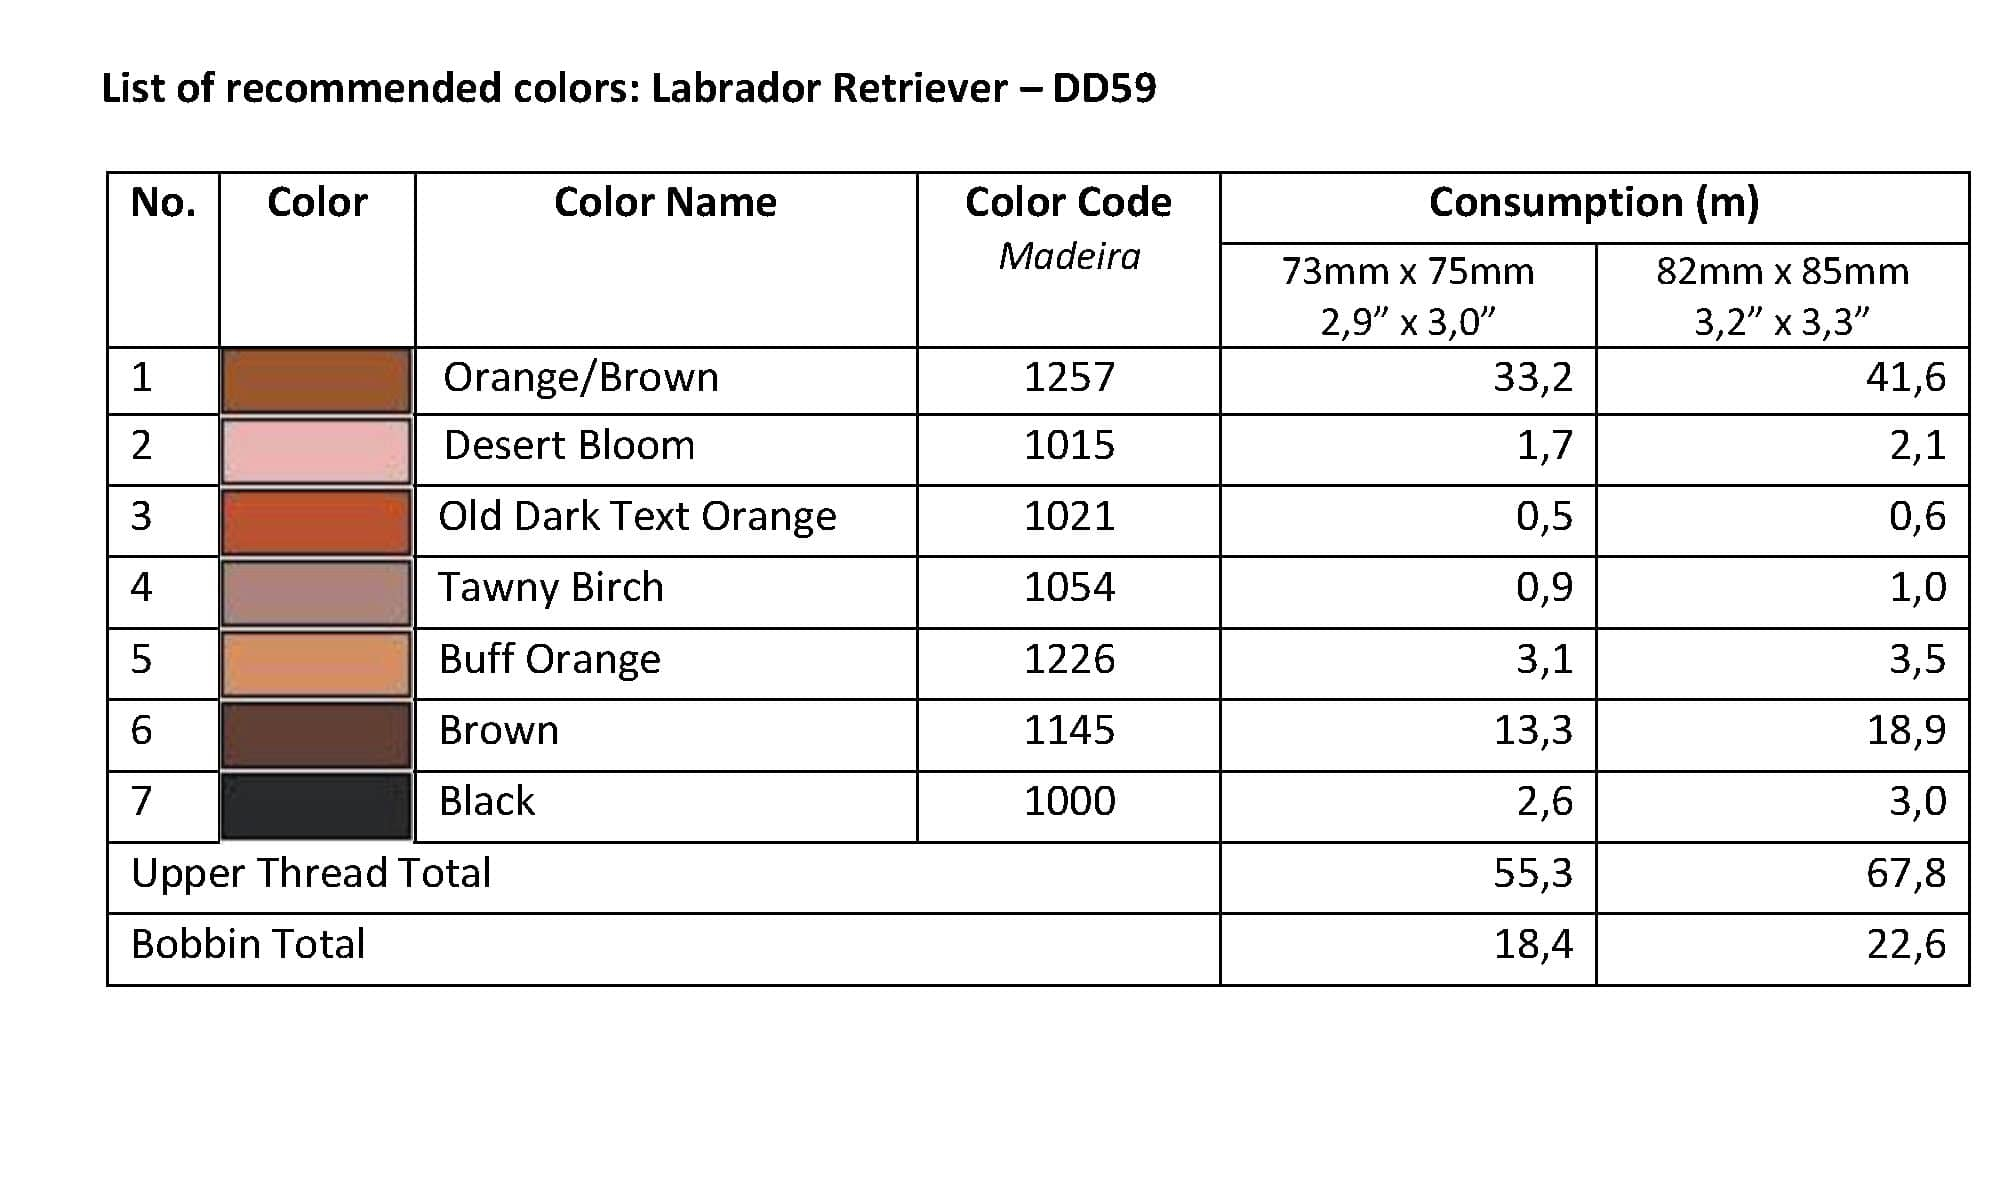 List of Recommended Colors -Labrador Retriever DD59